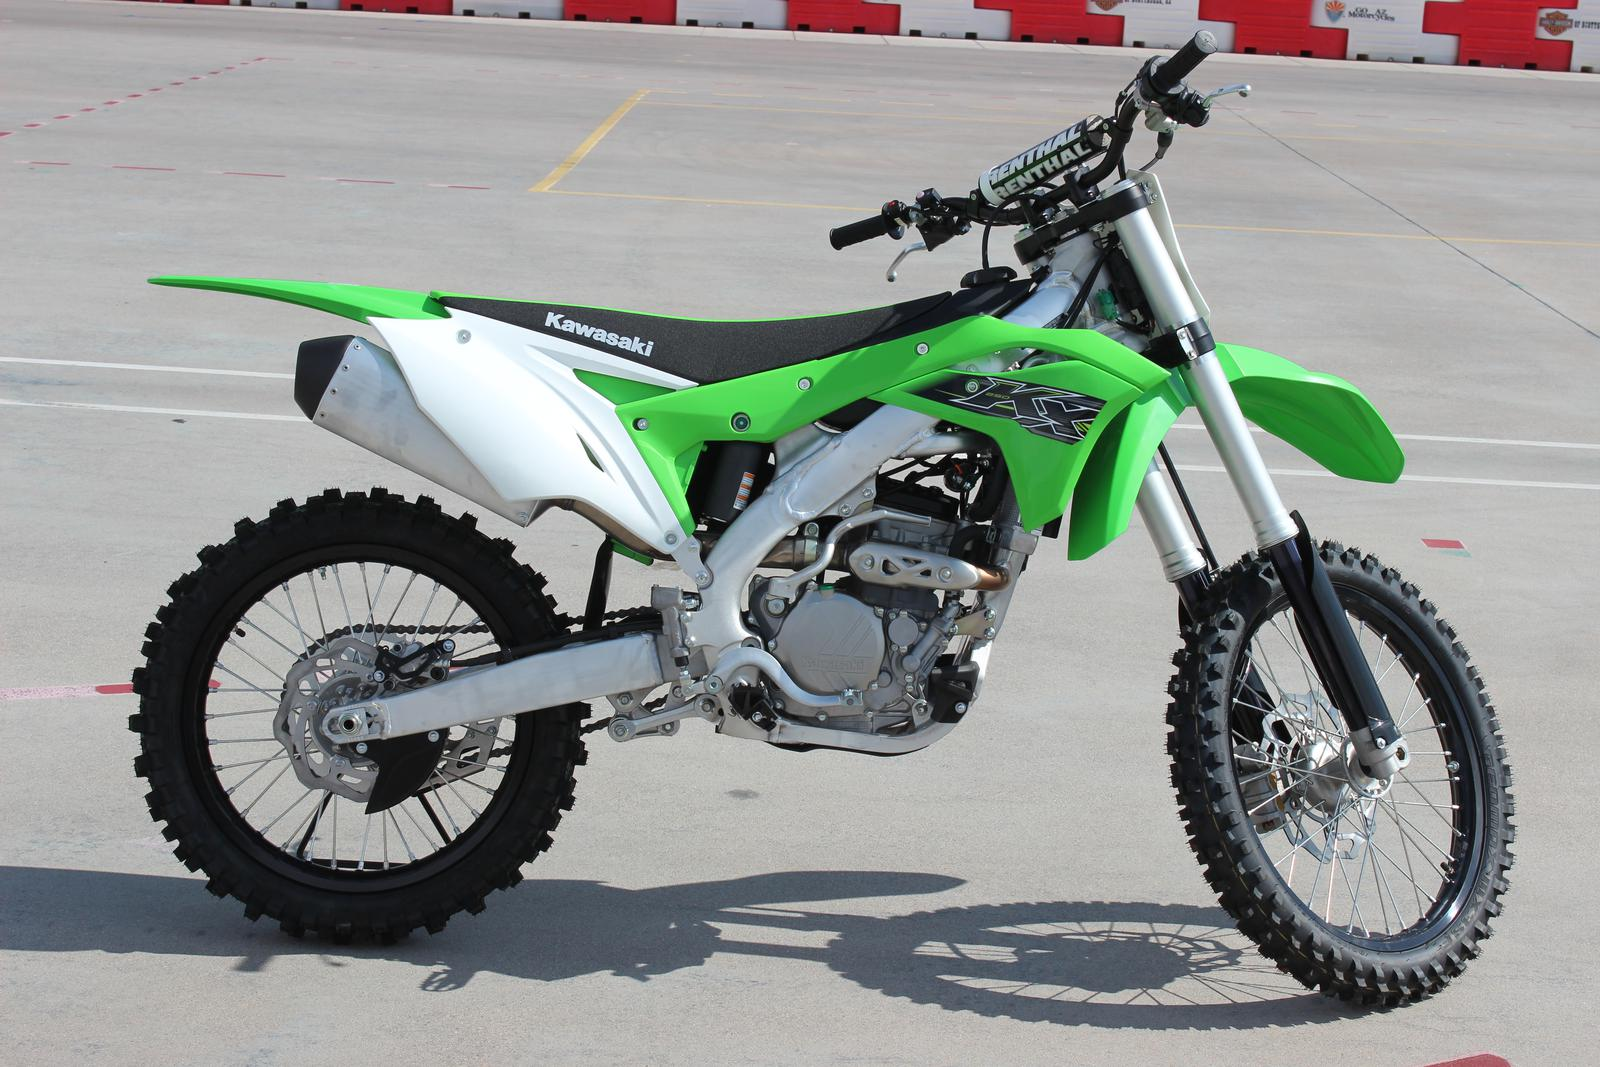 2019 Kawasaki Kx250 For Sale In Scottsdale Az Go Az Motorcycles In Scottsdale